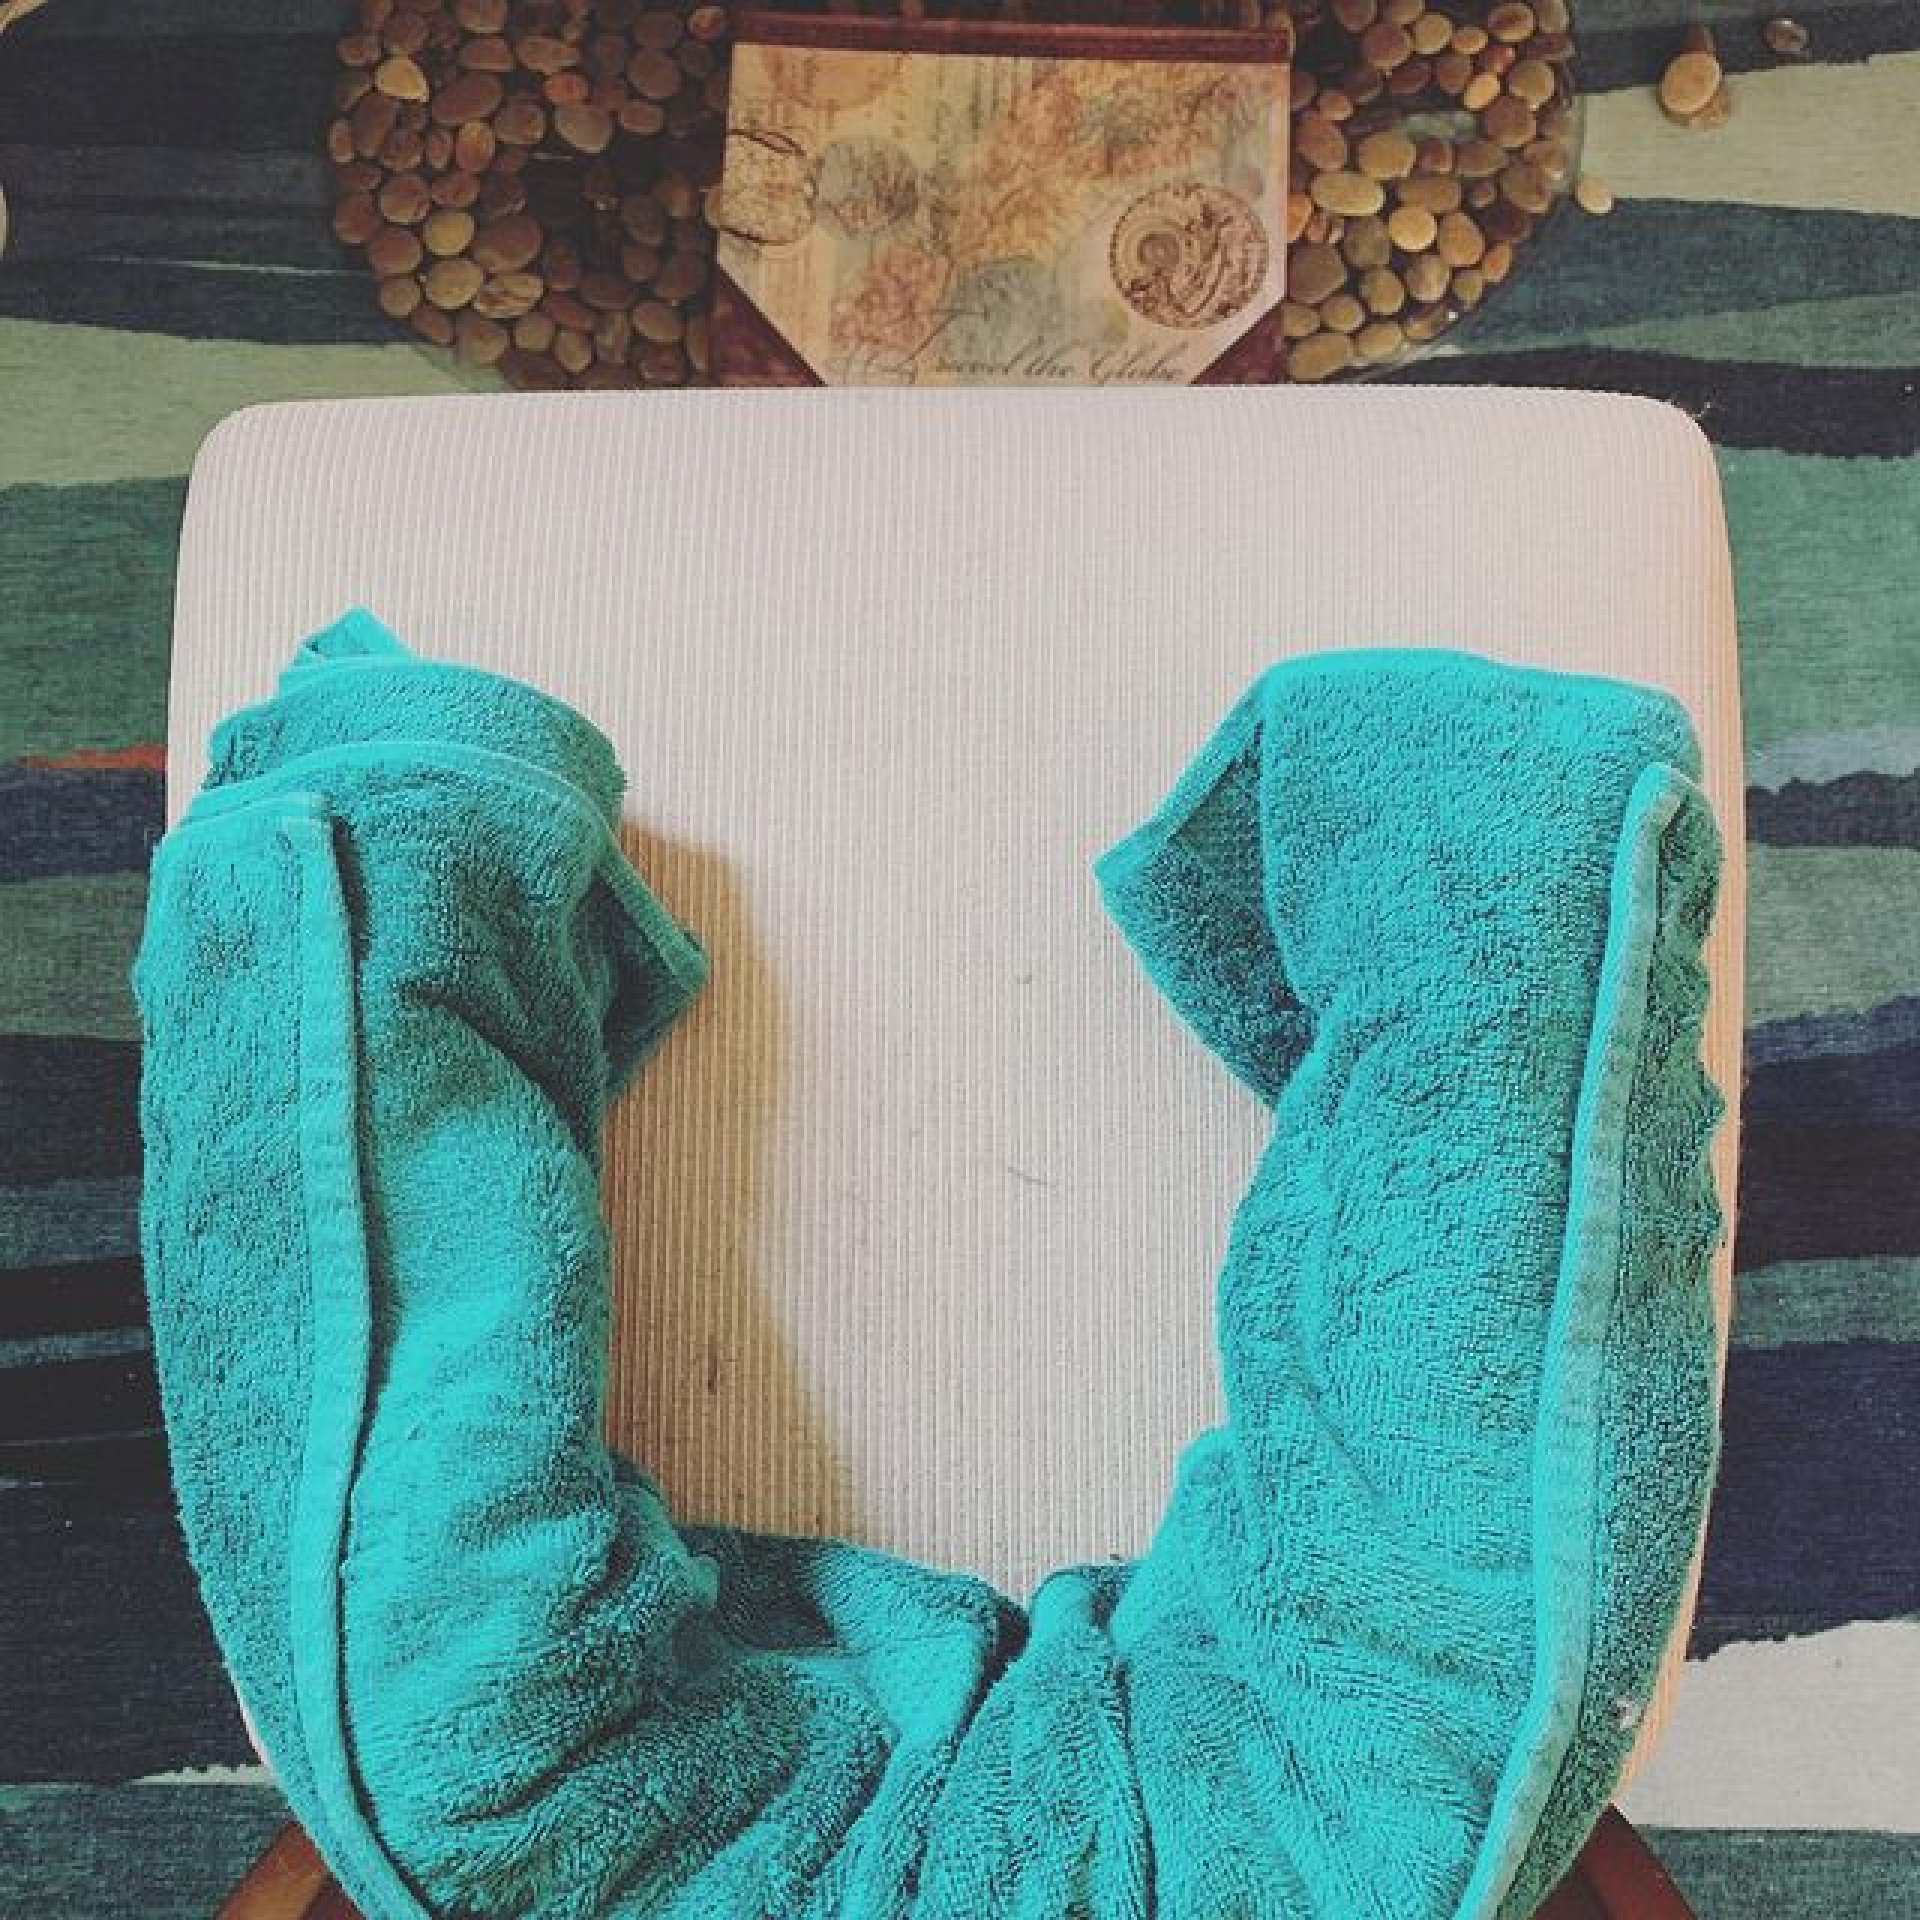 Desk chair life hack! Take a towel, fold it in half, roll it, mold it into a C and sit on it! It'll help to hold your pelvis in place so you will end up having better posture for when you're sitting. | Photo courtesy of Whitney Ogle